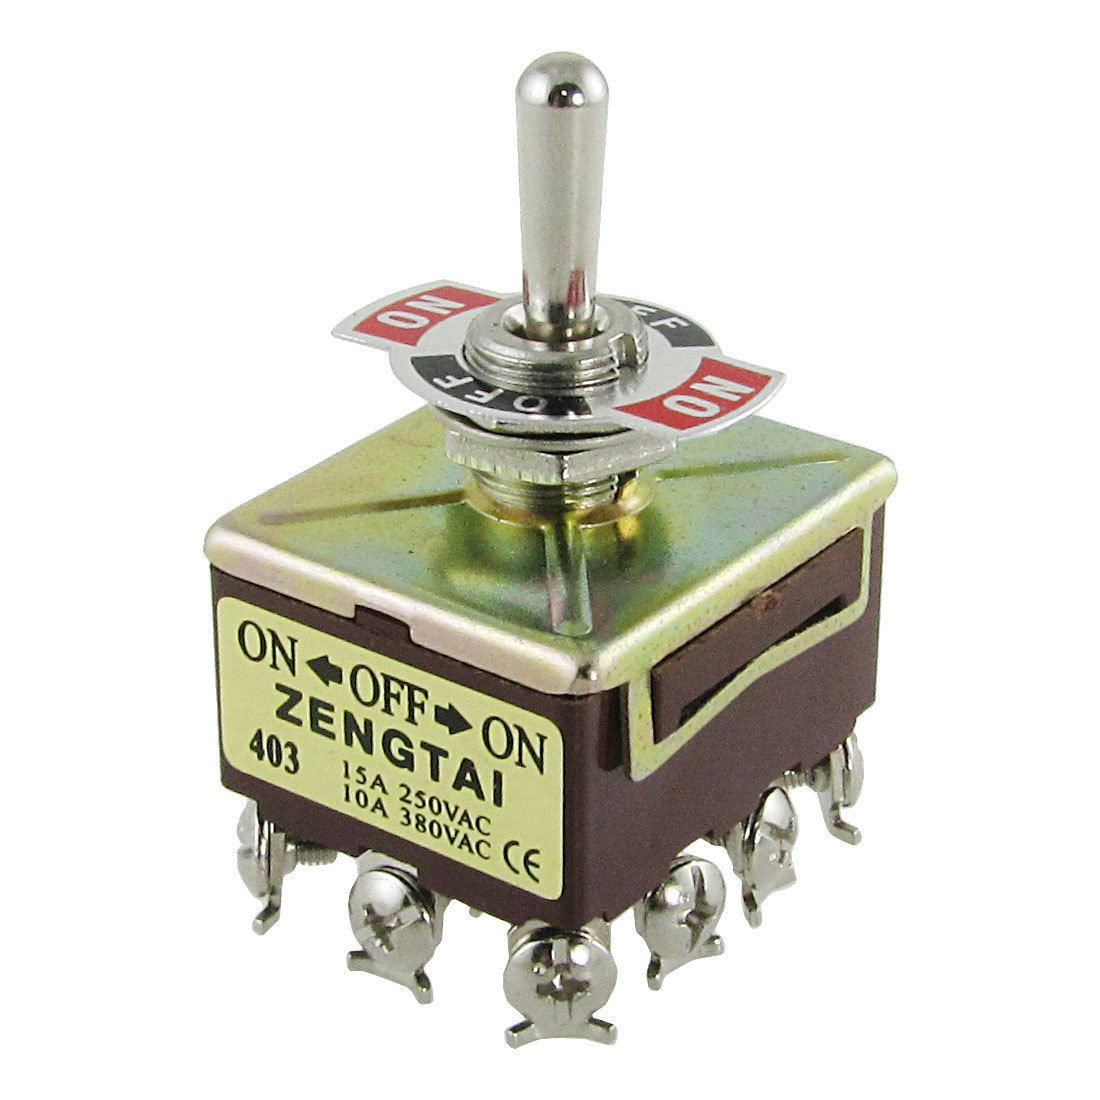 10A/380VAC 15A/250VAC 3 Position 4PDT ON-OFF-ON 12 Pin Toggle Switch TEN403